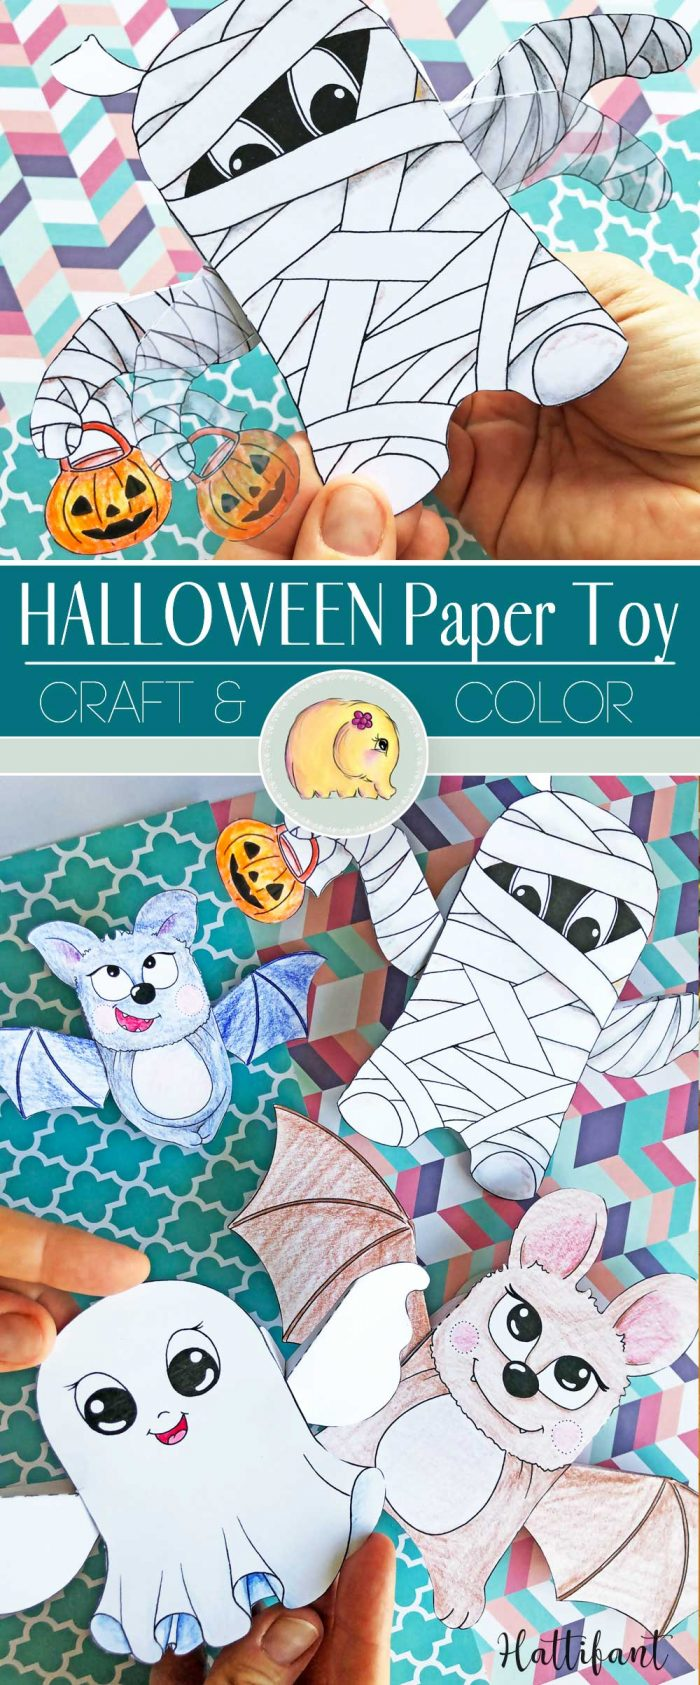 Hattifant's Halloween 3D Moving Paper Toy with bat, ghost and mummy to color and craft Pin